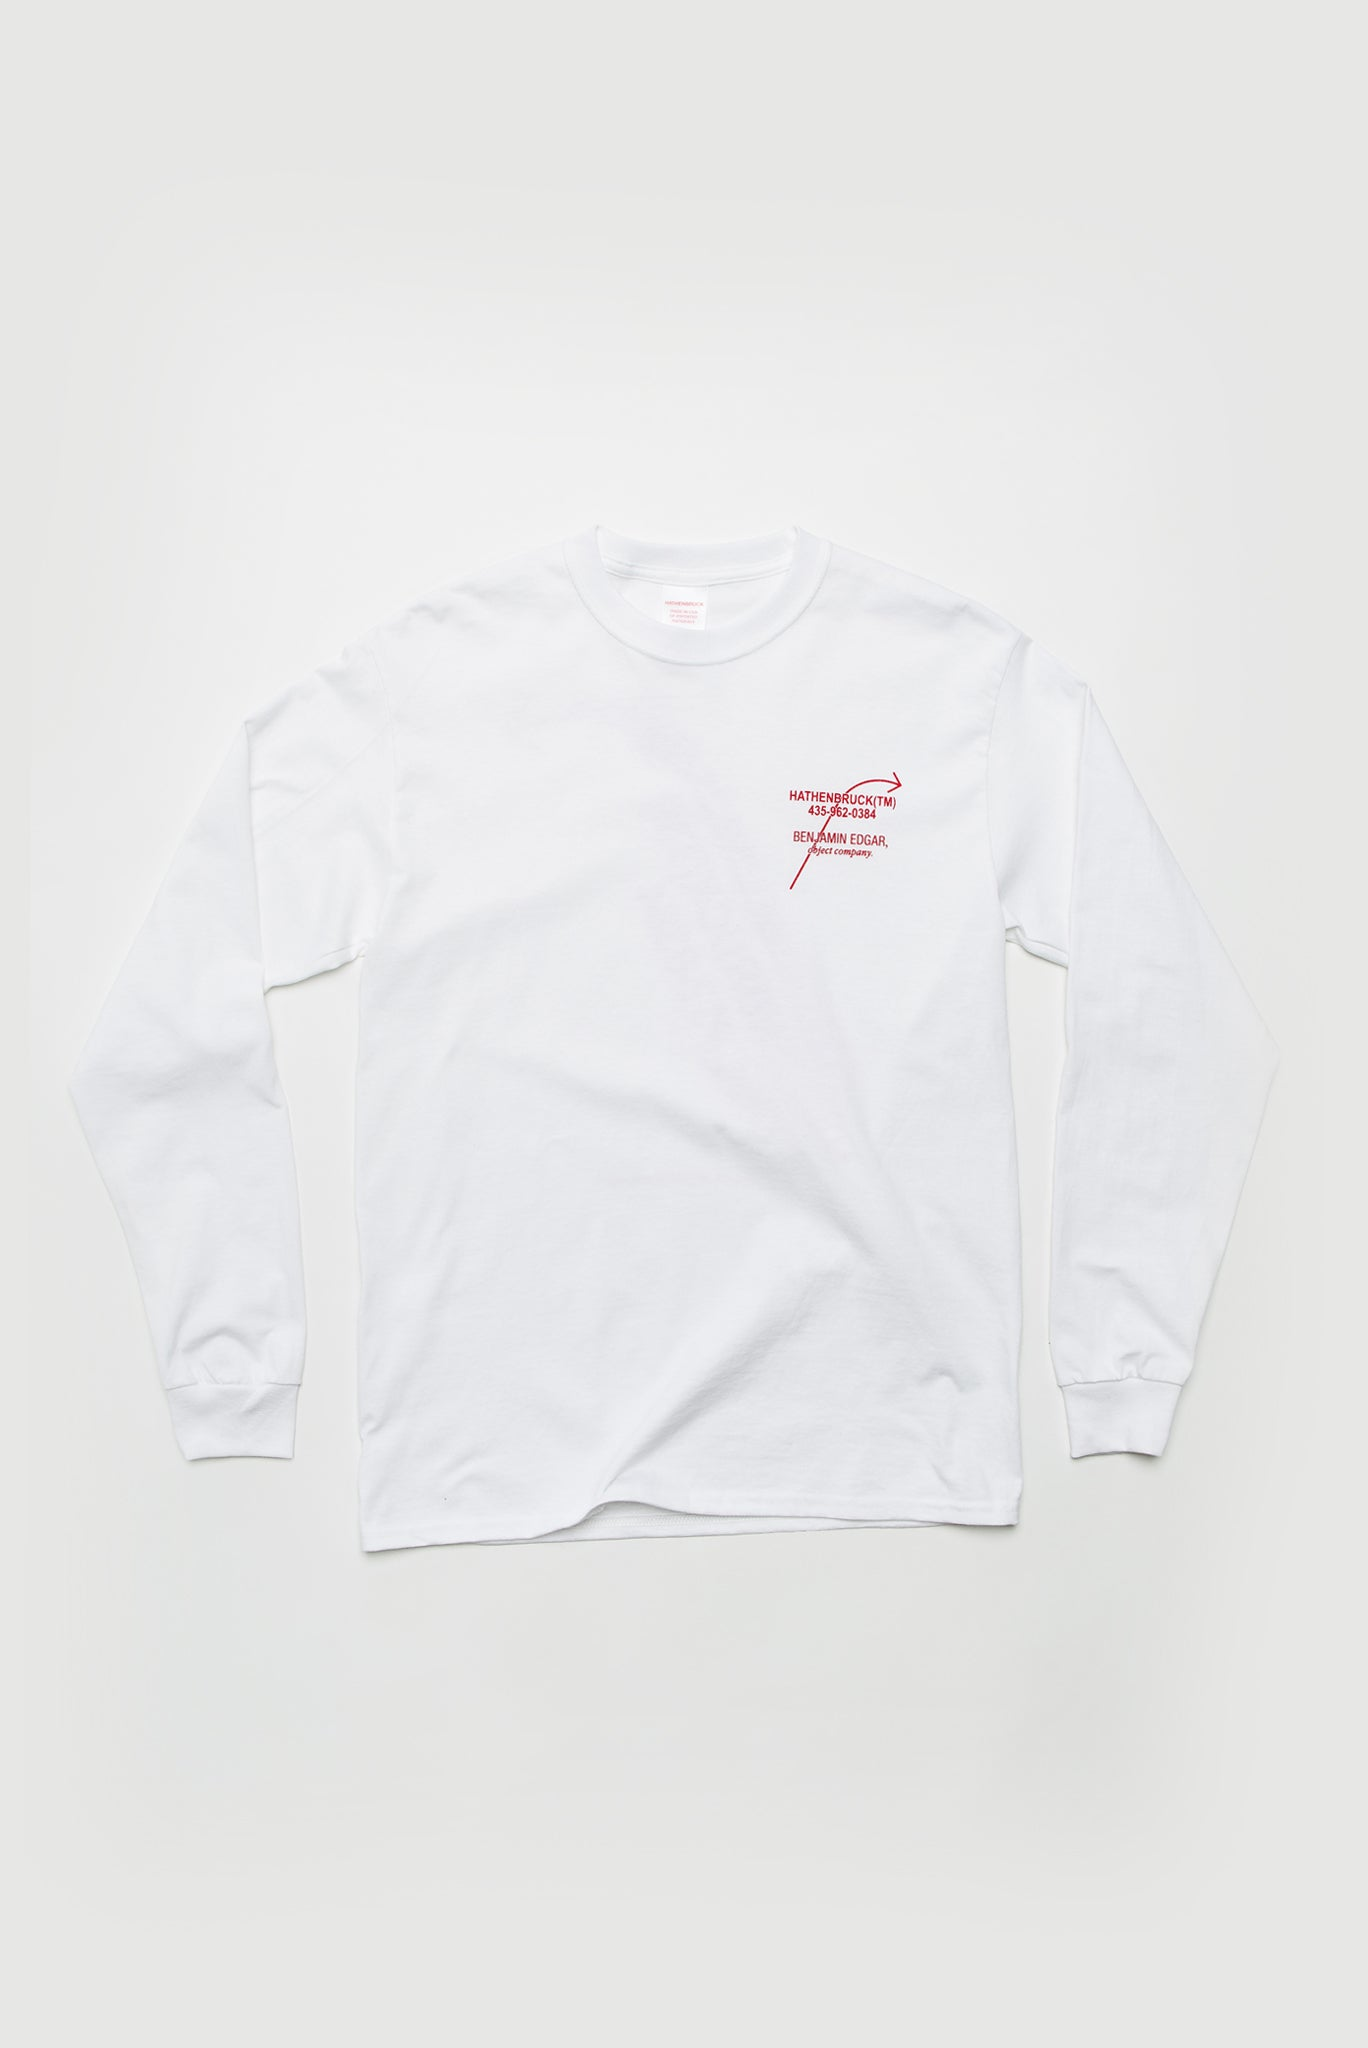 Benjamin Edgar for Hathenbruck Long Sleeve T-Shirt